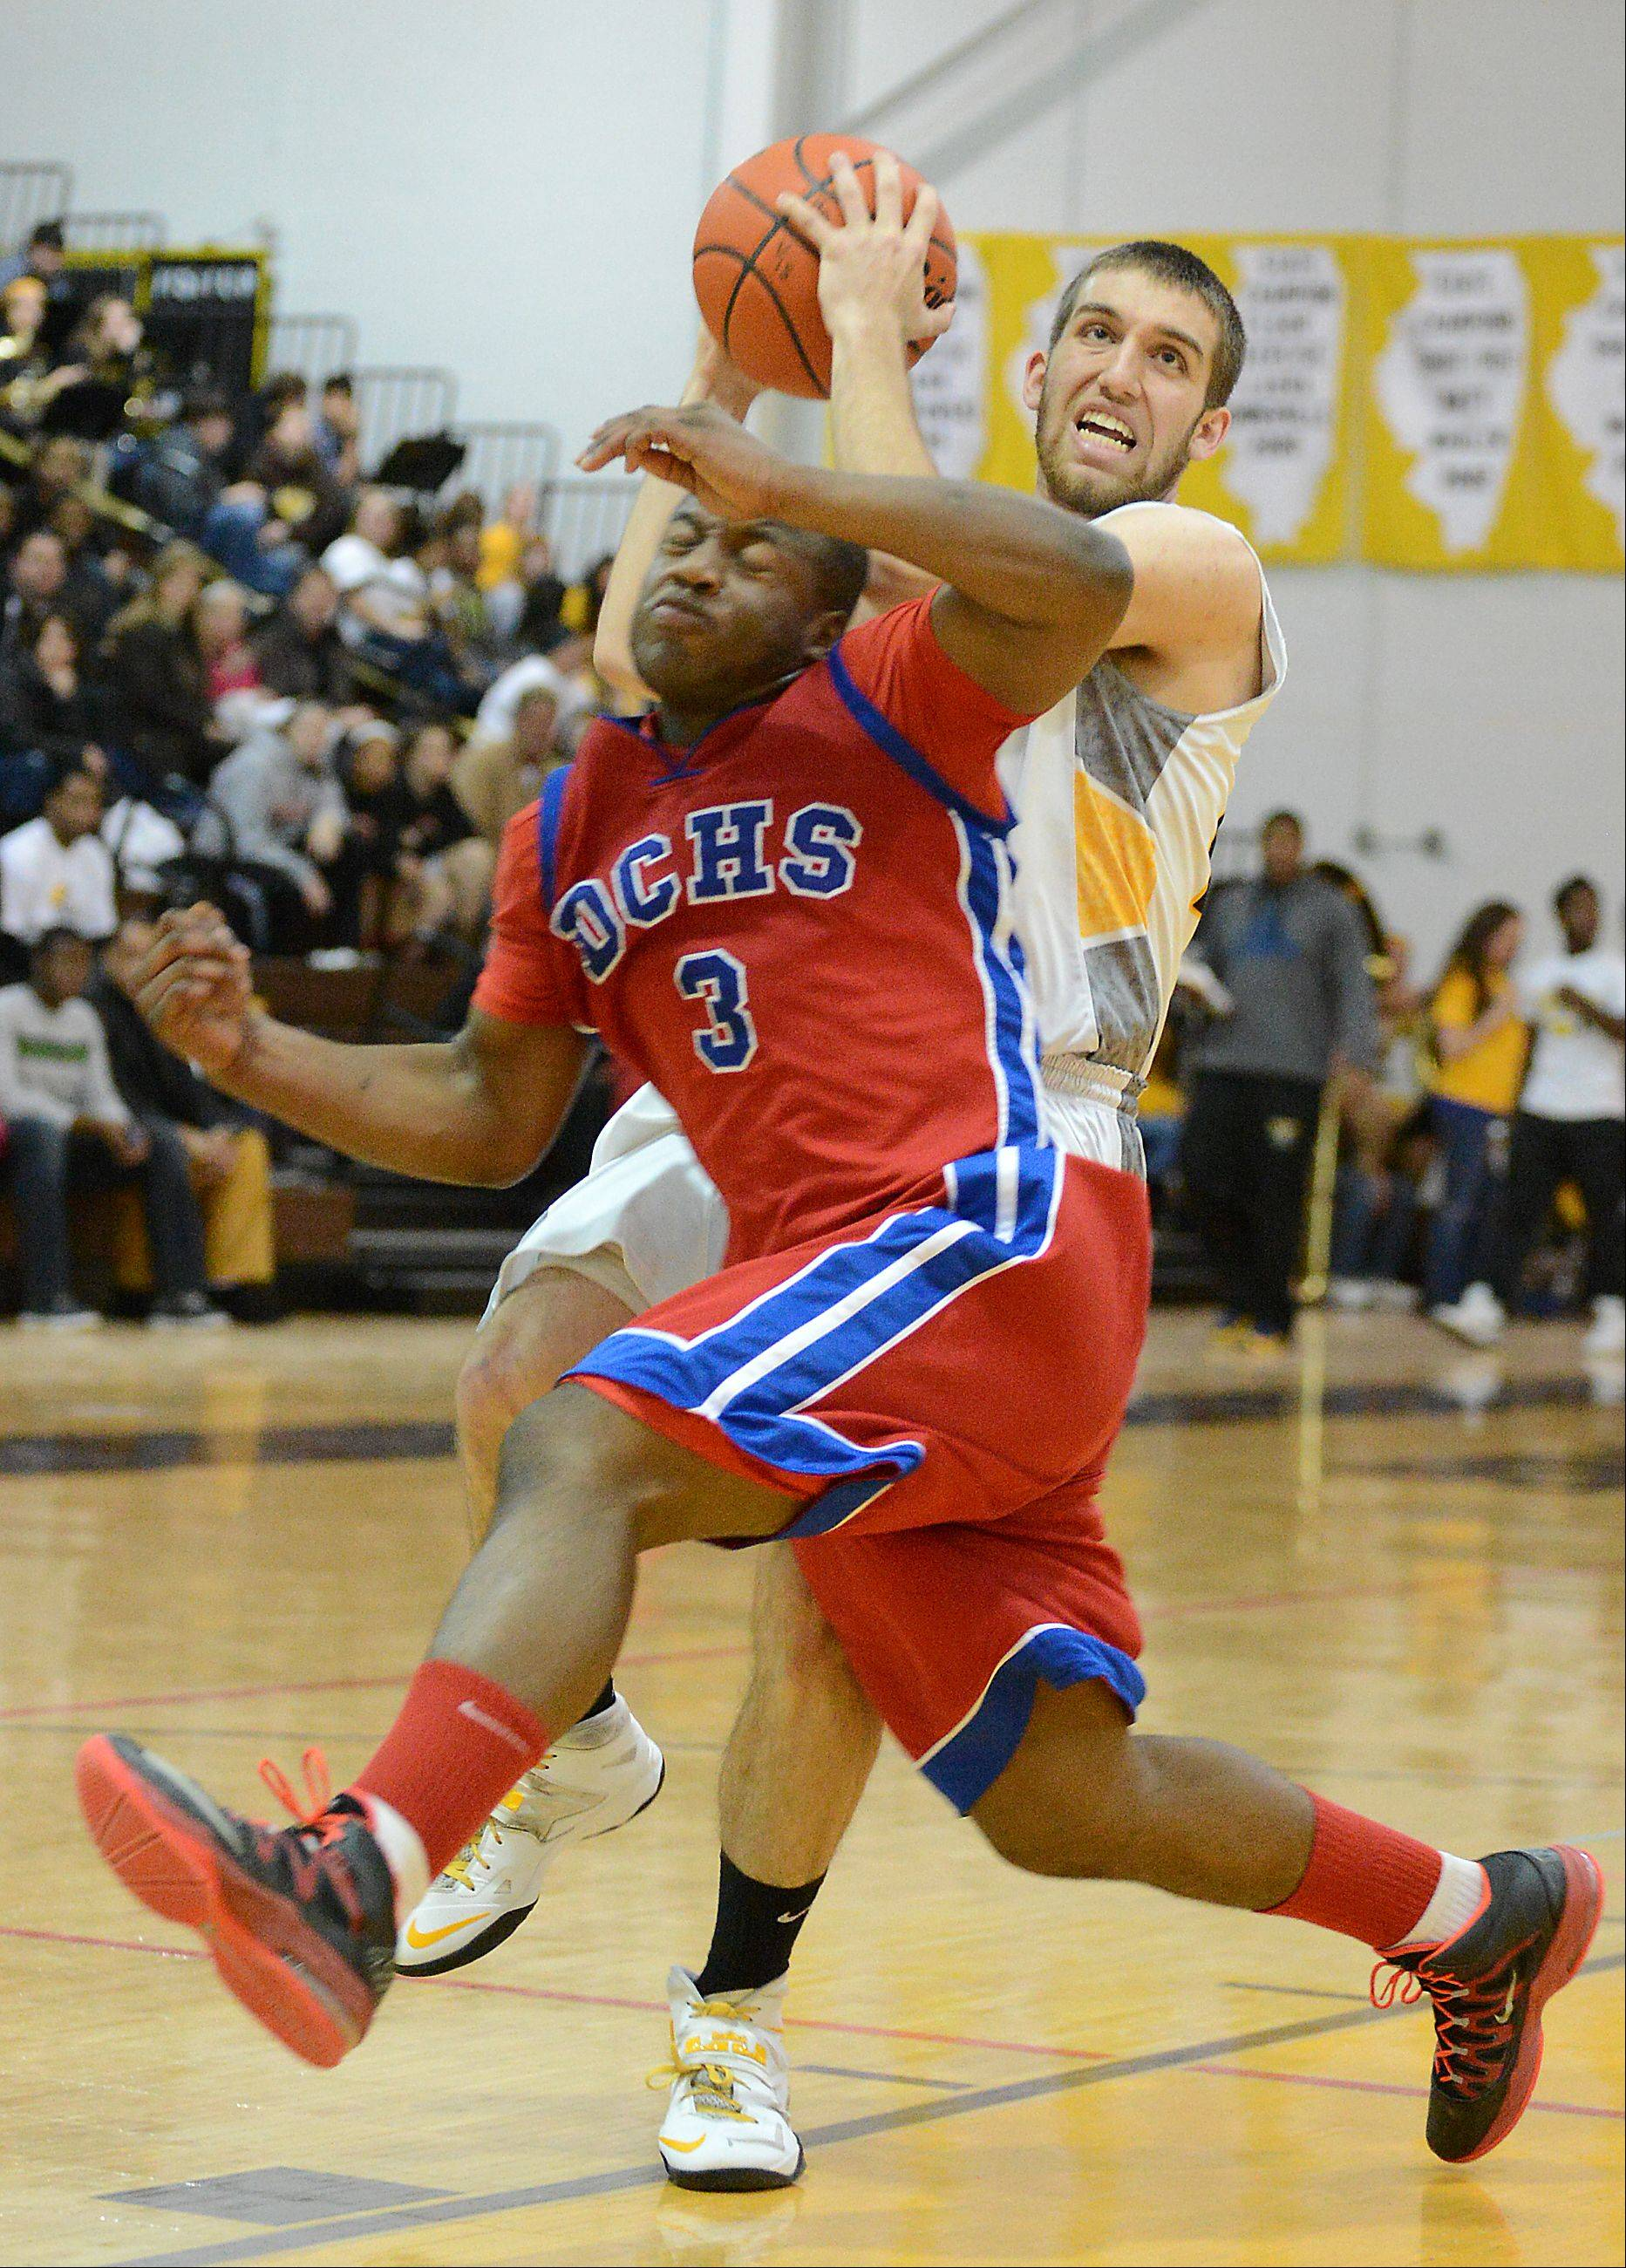 Ben Murray of Jacobs gets tangled up with Dundee-Crown's Cordero Parson before breaking free for a layup and a foul.